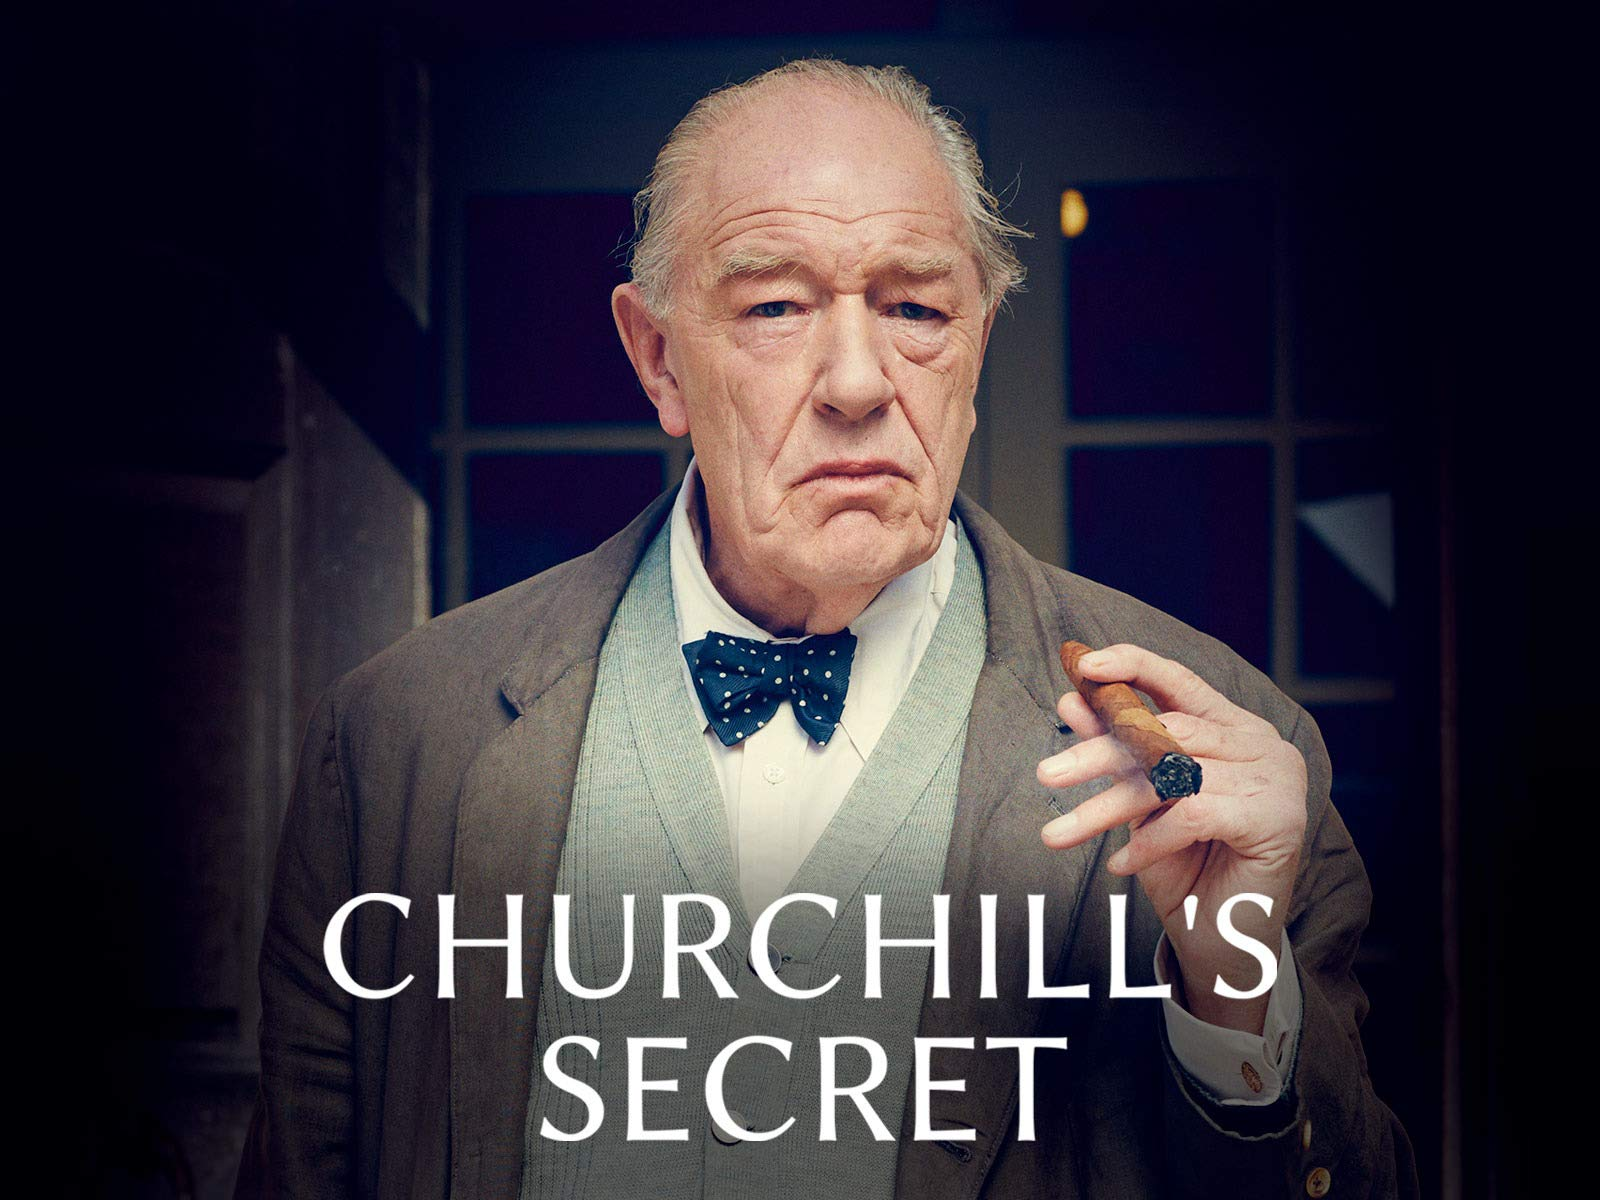 Churchill's Secret on Amazon Prime Video UK